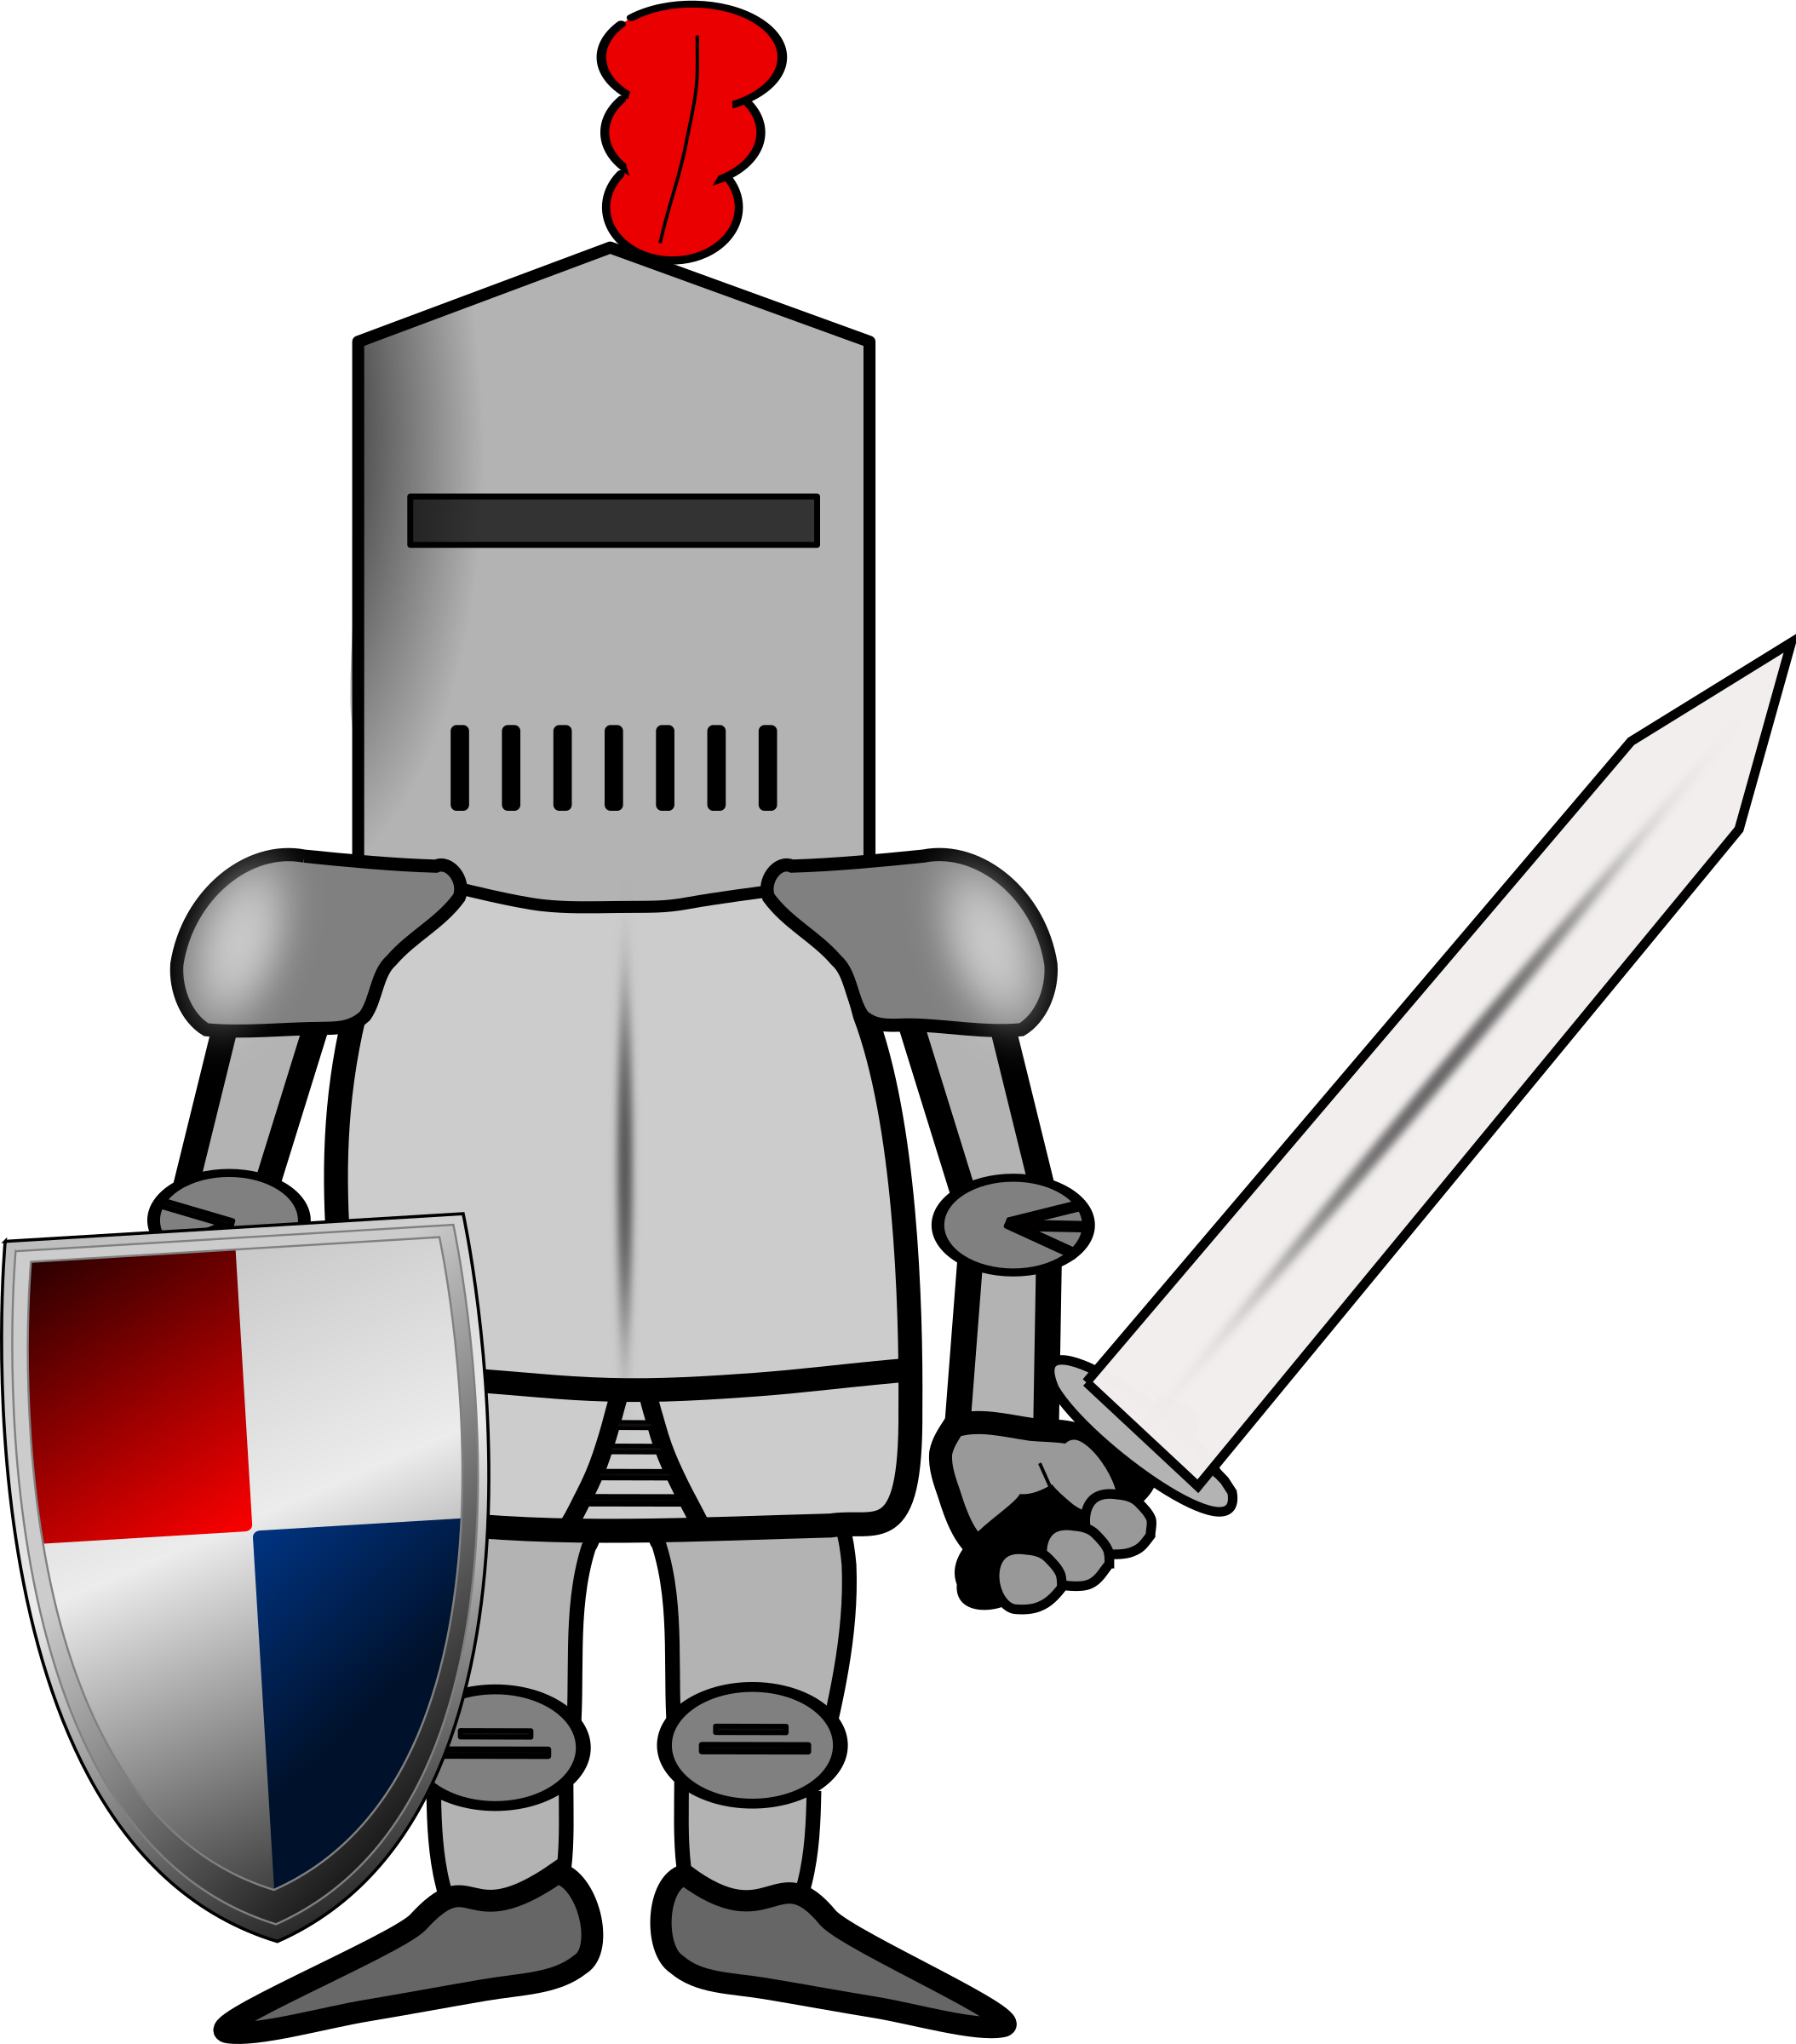 clipart ritter rh openclipart org knight clipart images night clip art